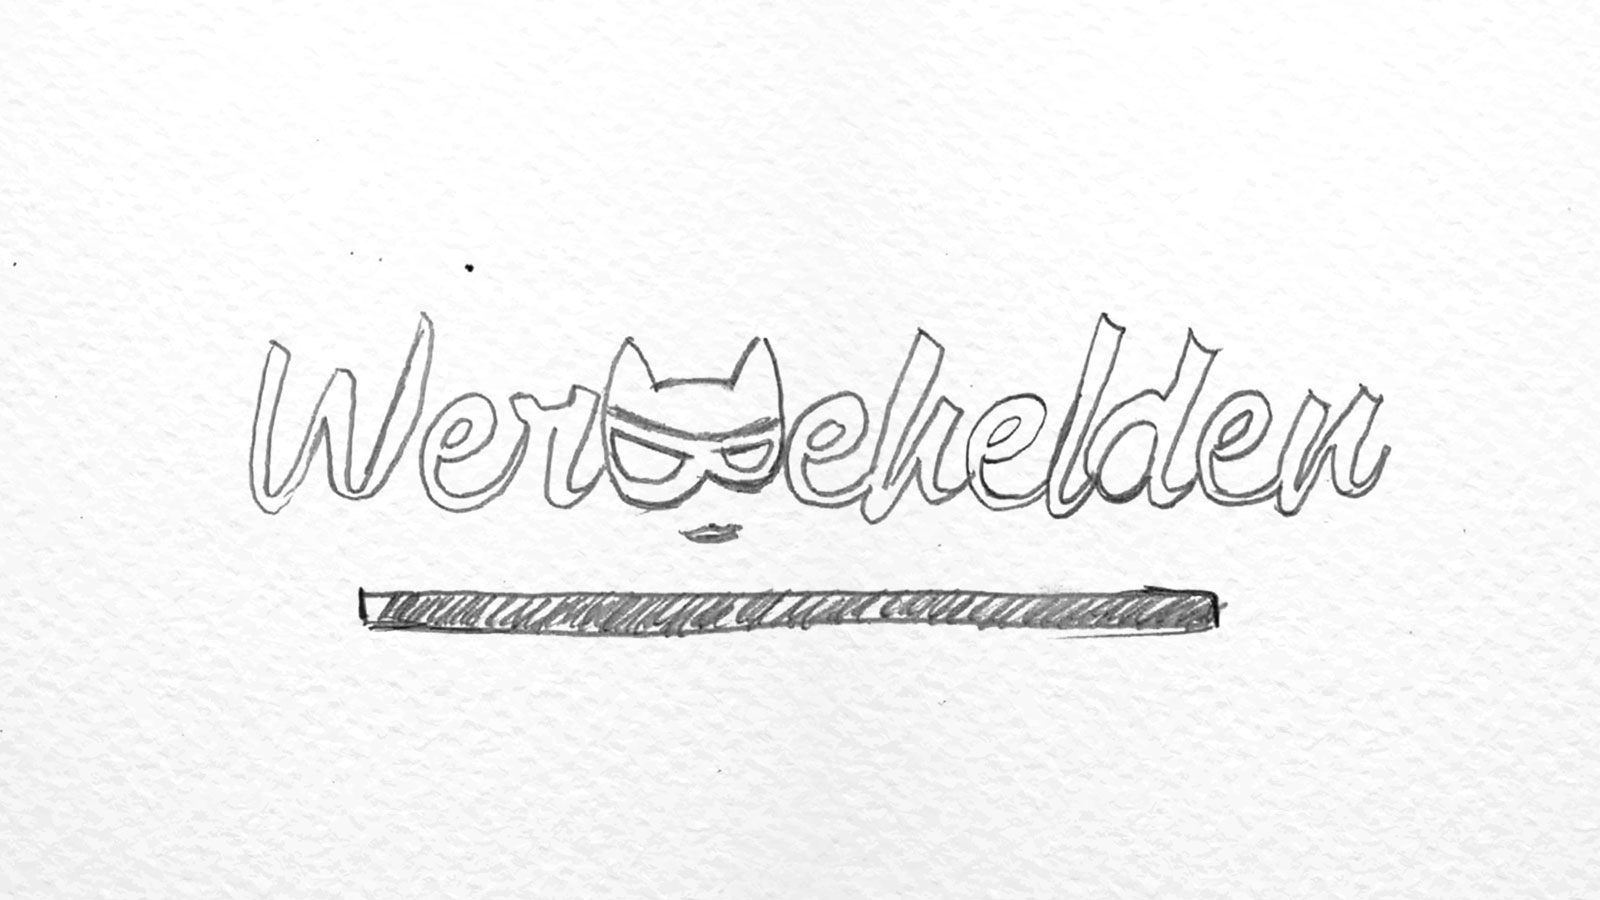 Werbehelden | werbehelden.com | 2019 (Logo Scribble 02) © echonet communication